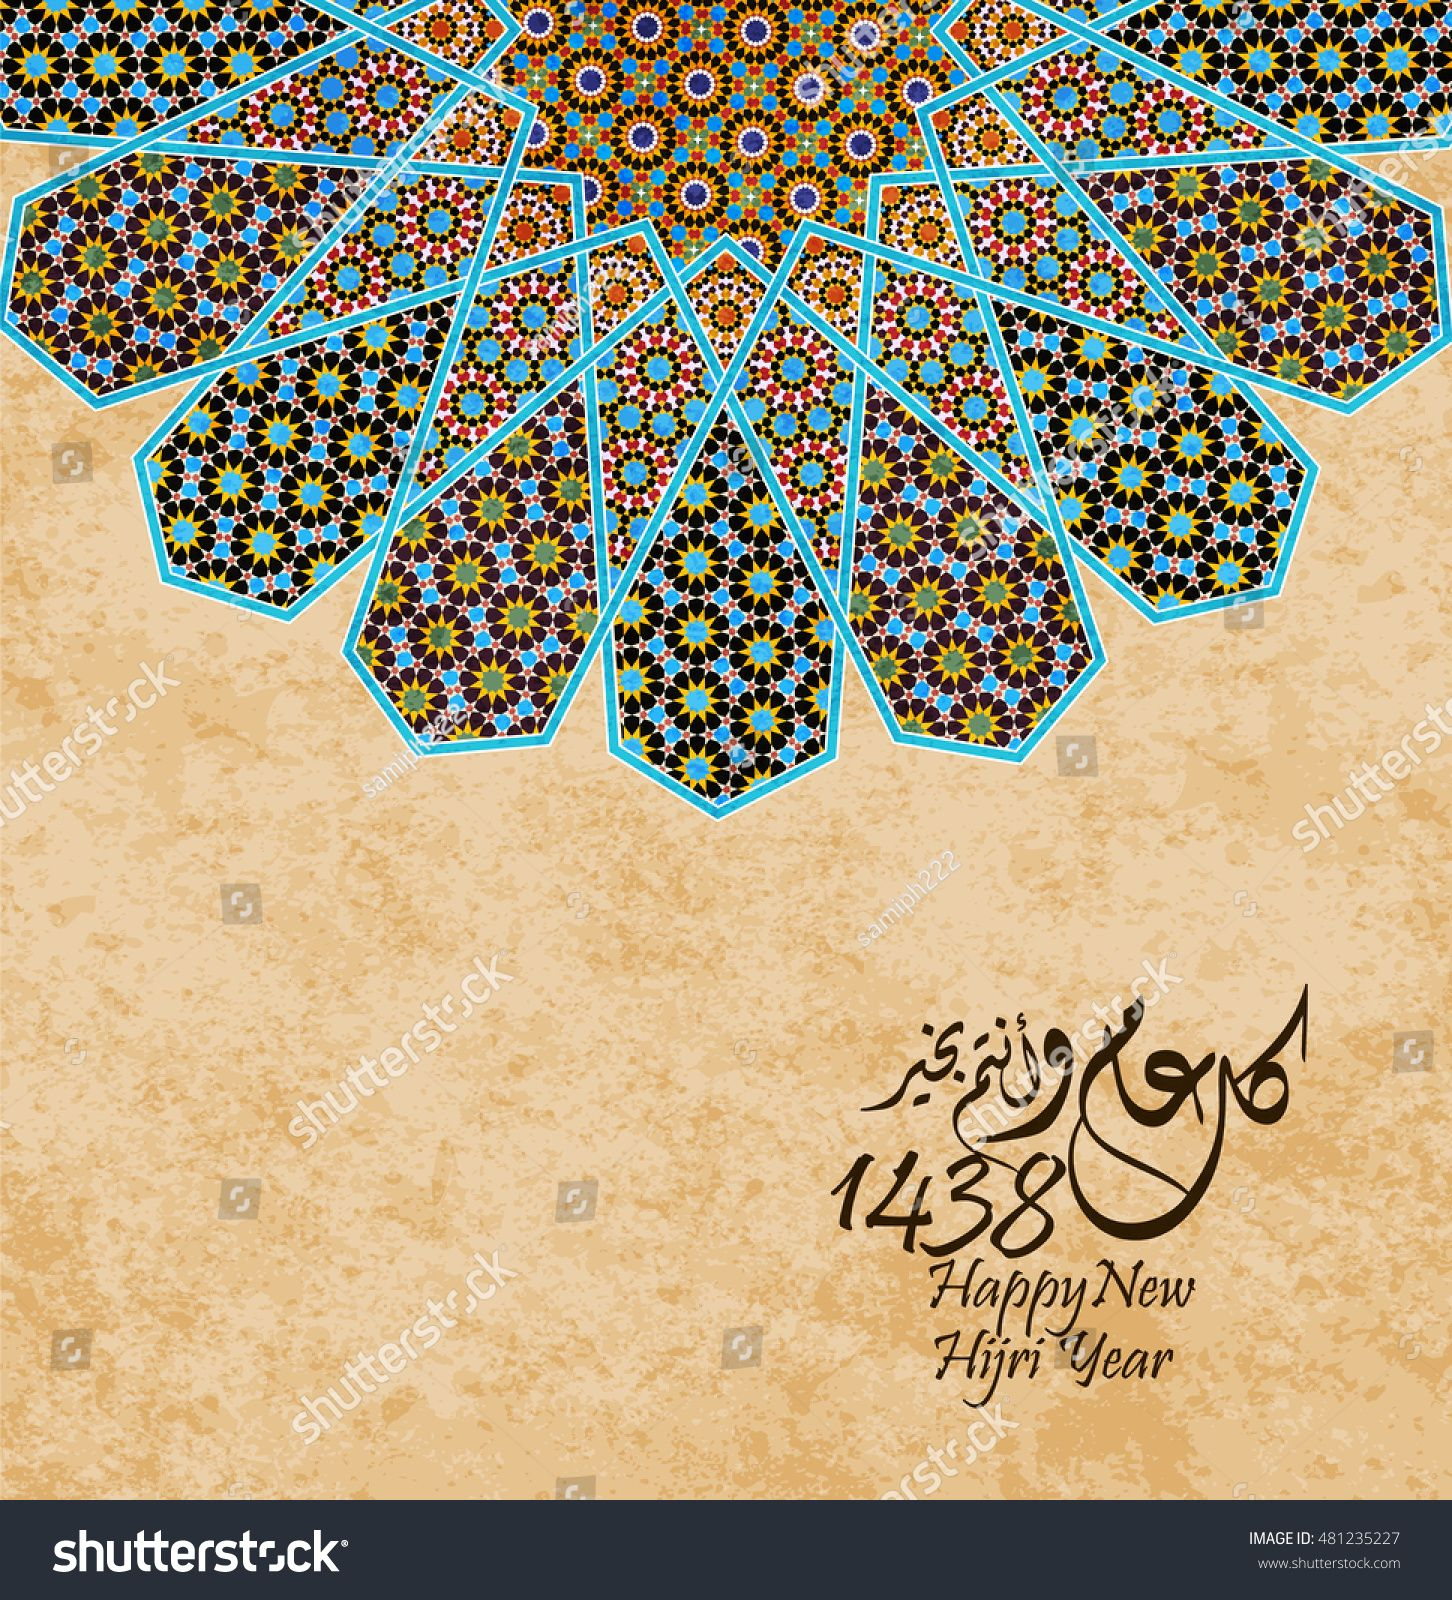 happy new hijri year 1438 happy new year for all muslim community the arabic text means happy new hijri year